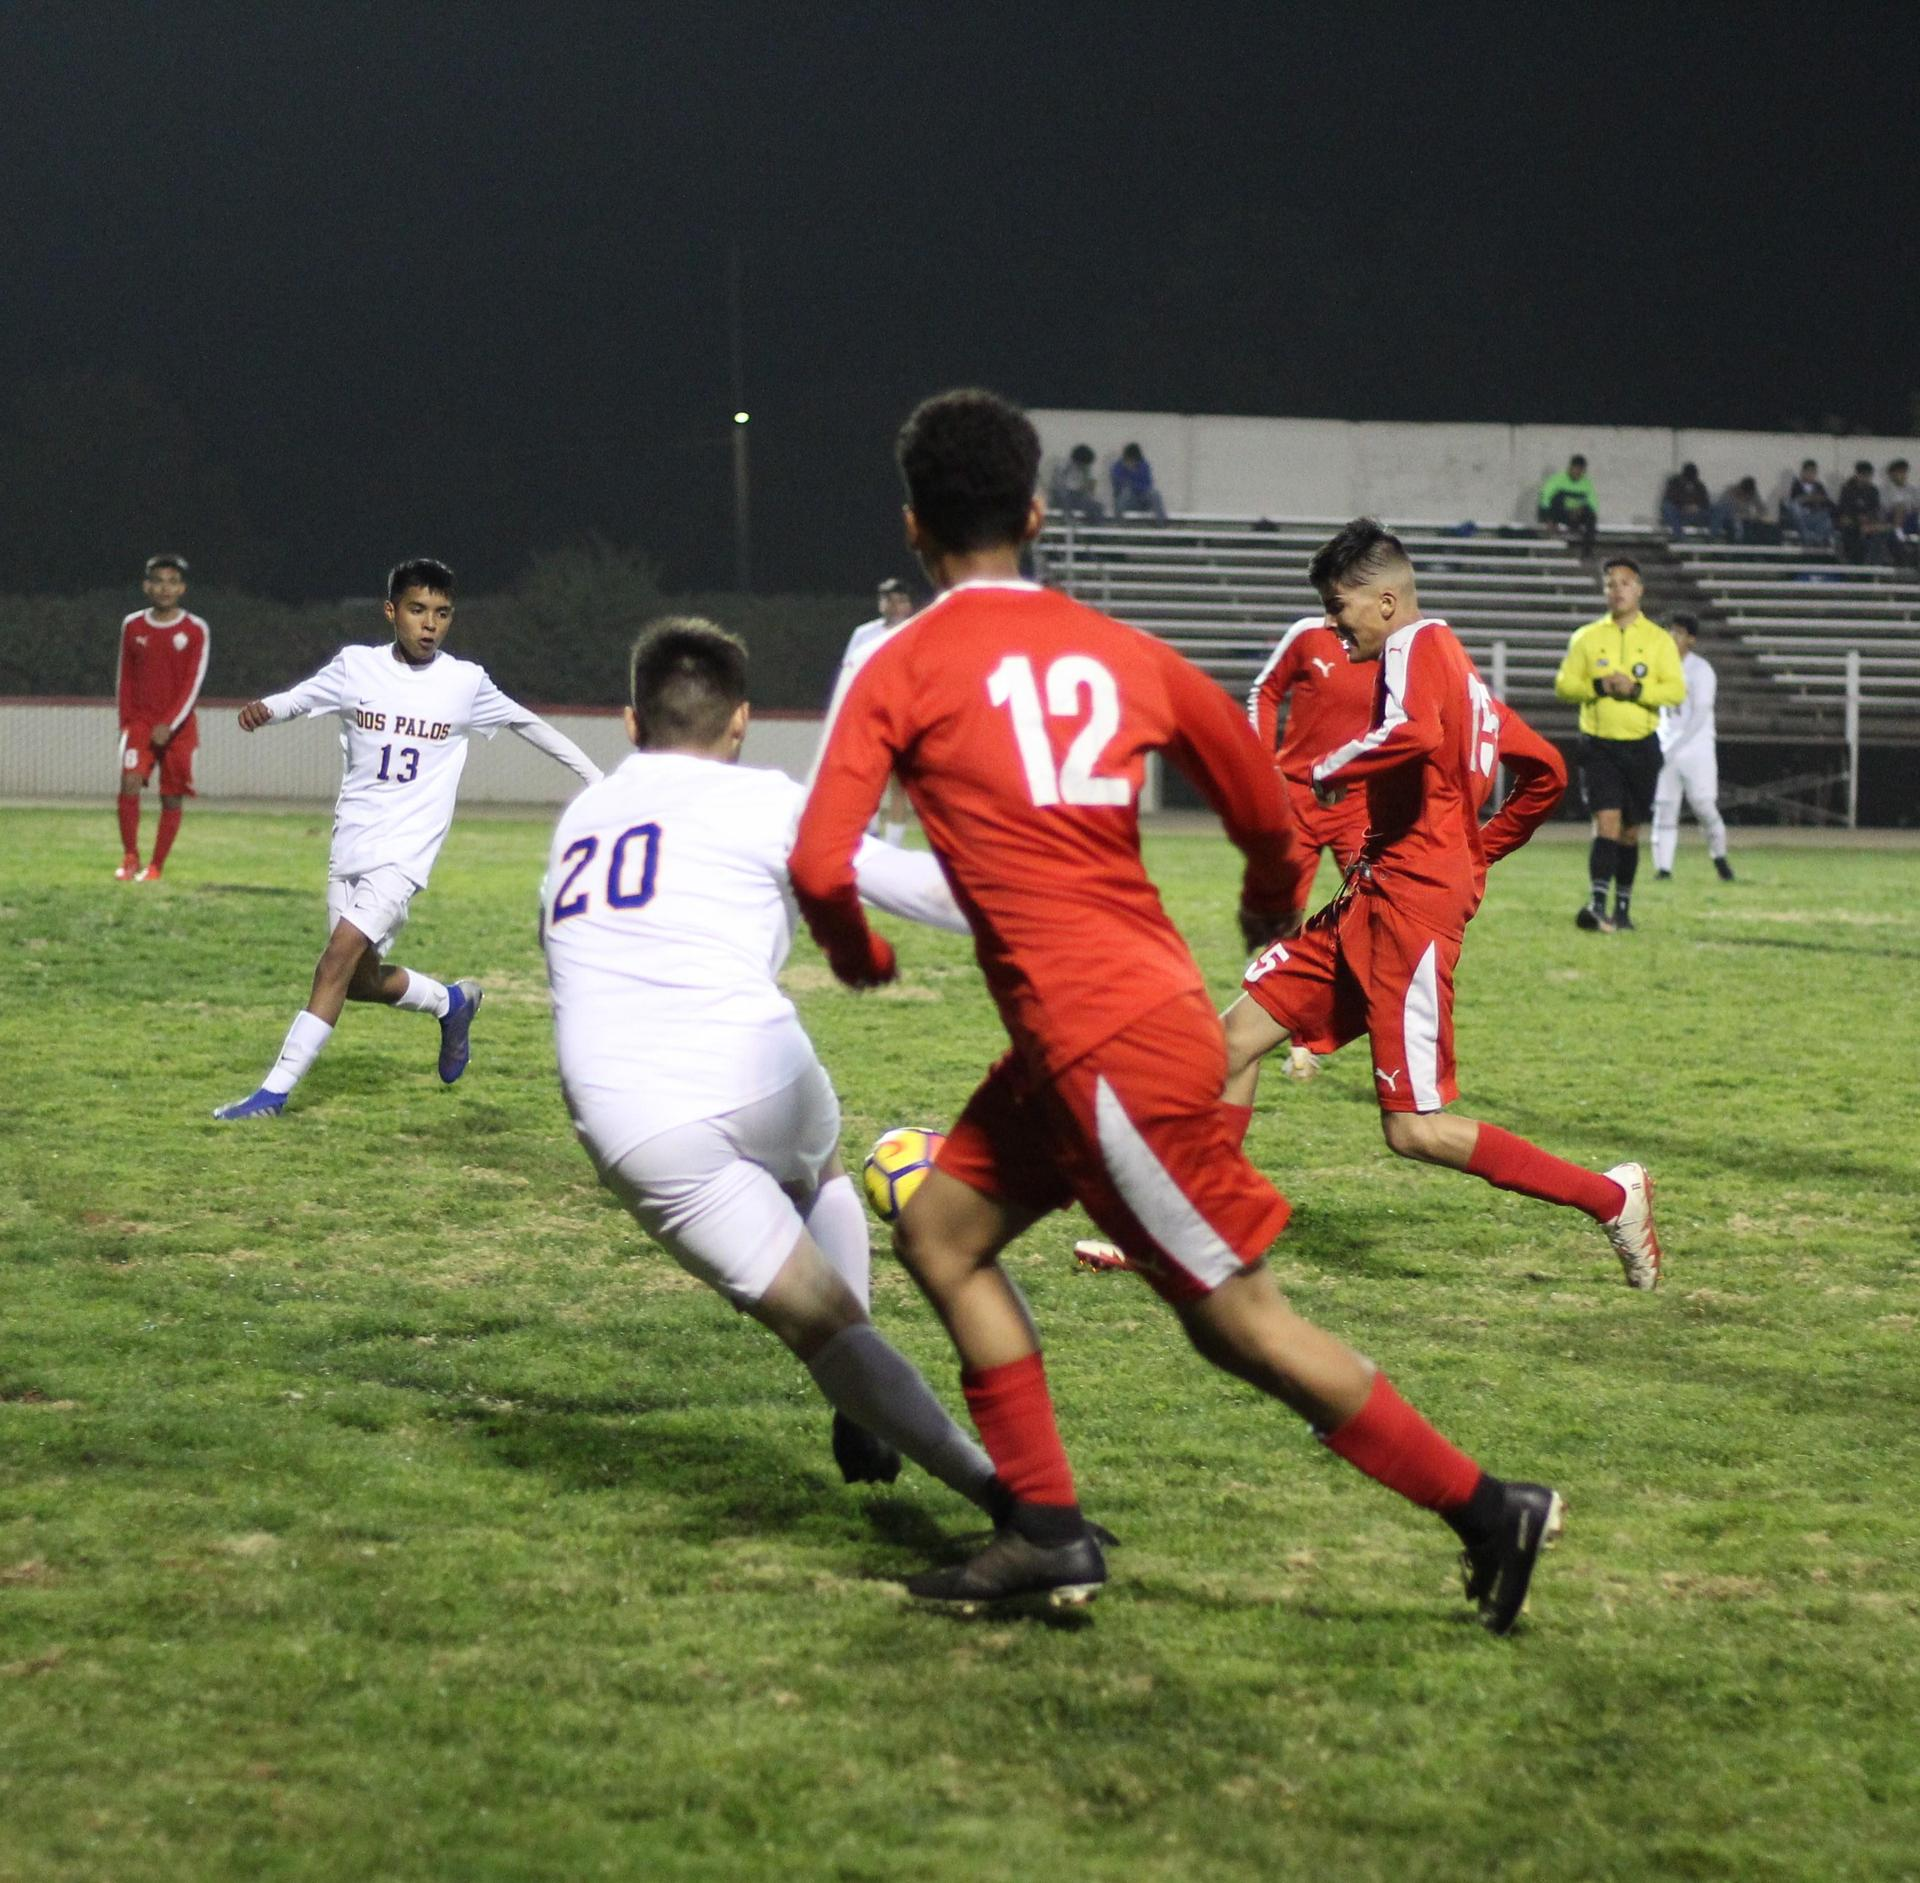 Chowchilla Players going for the ball